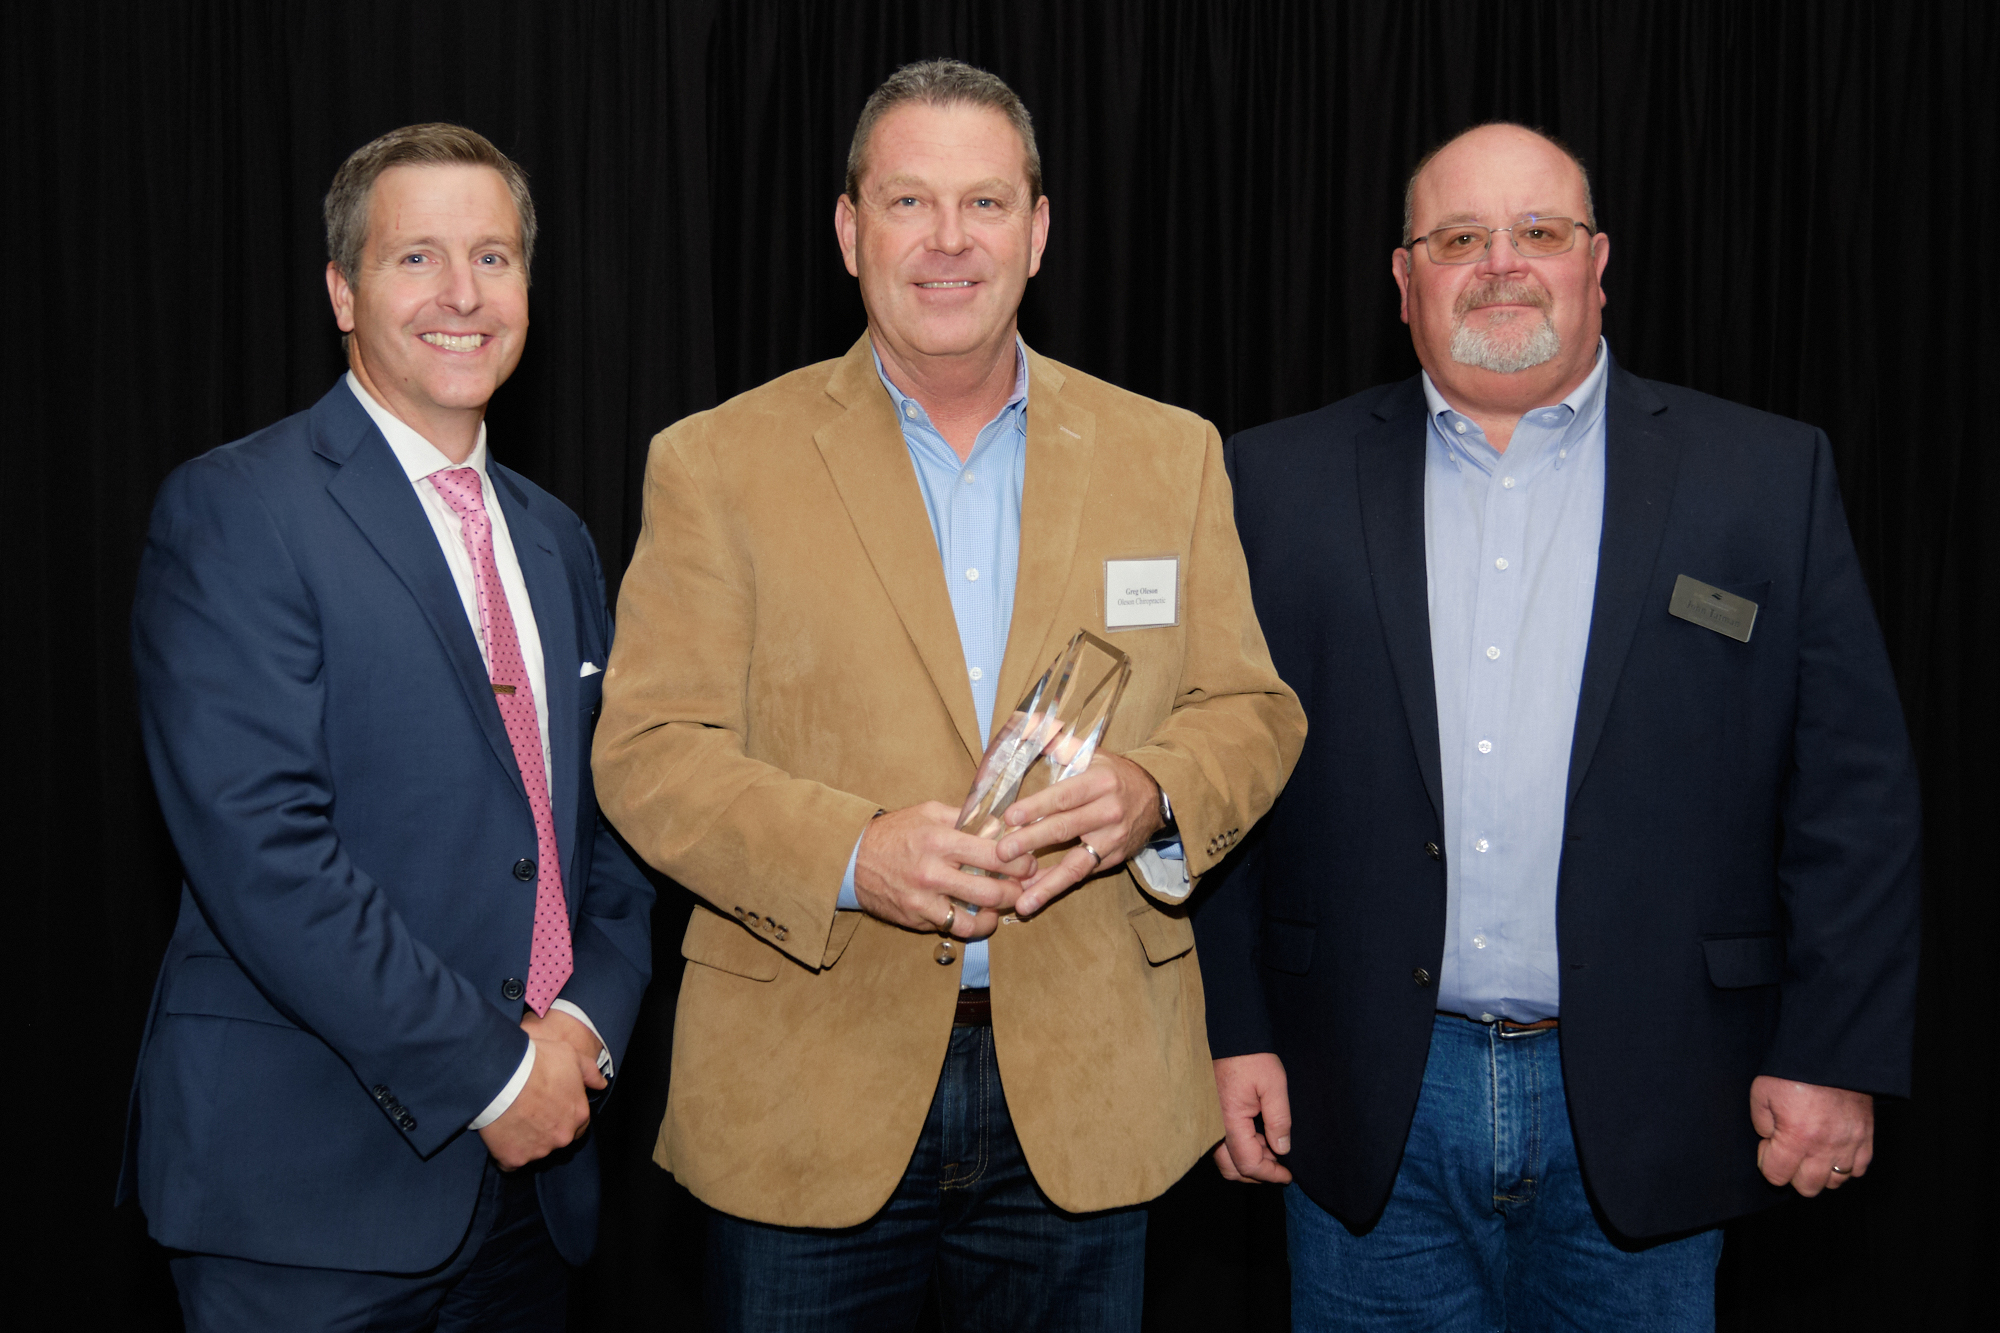 L to R: Corridor CEO Kiley Miller, Greg Oleson of Oleson Chiropractic - 2019 Small Business Excellence Awardee, Corridor Board Chair John Tatman